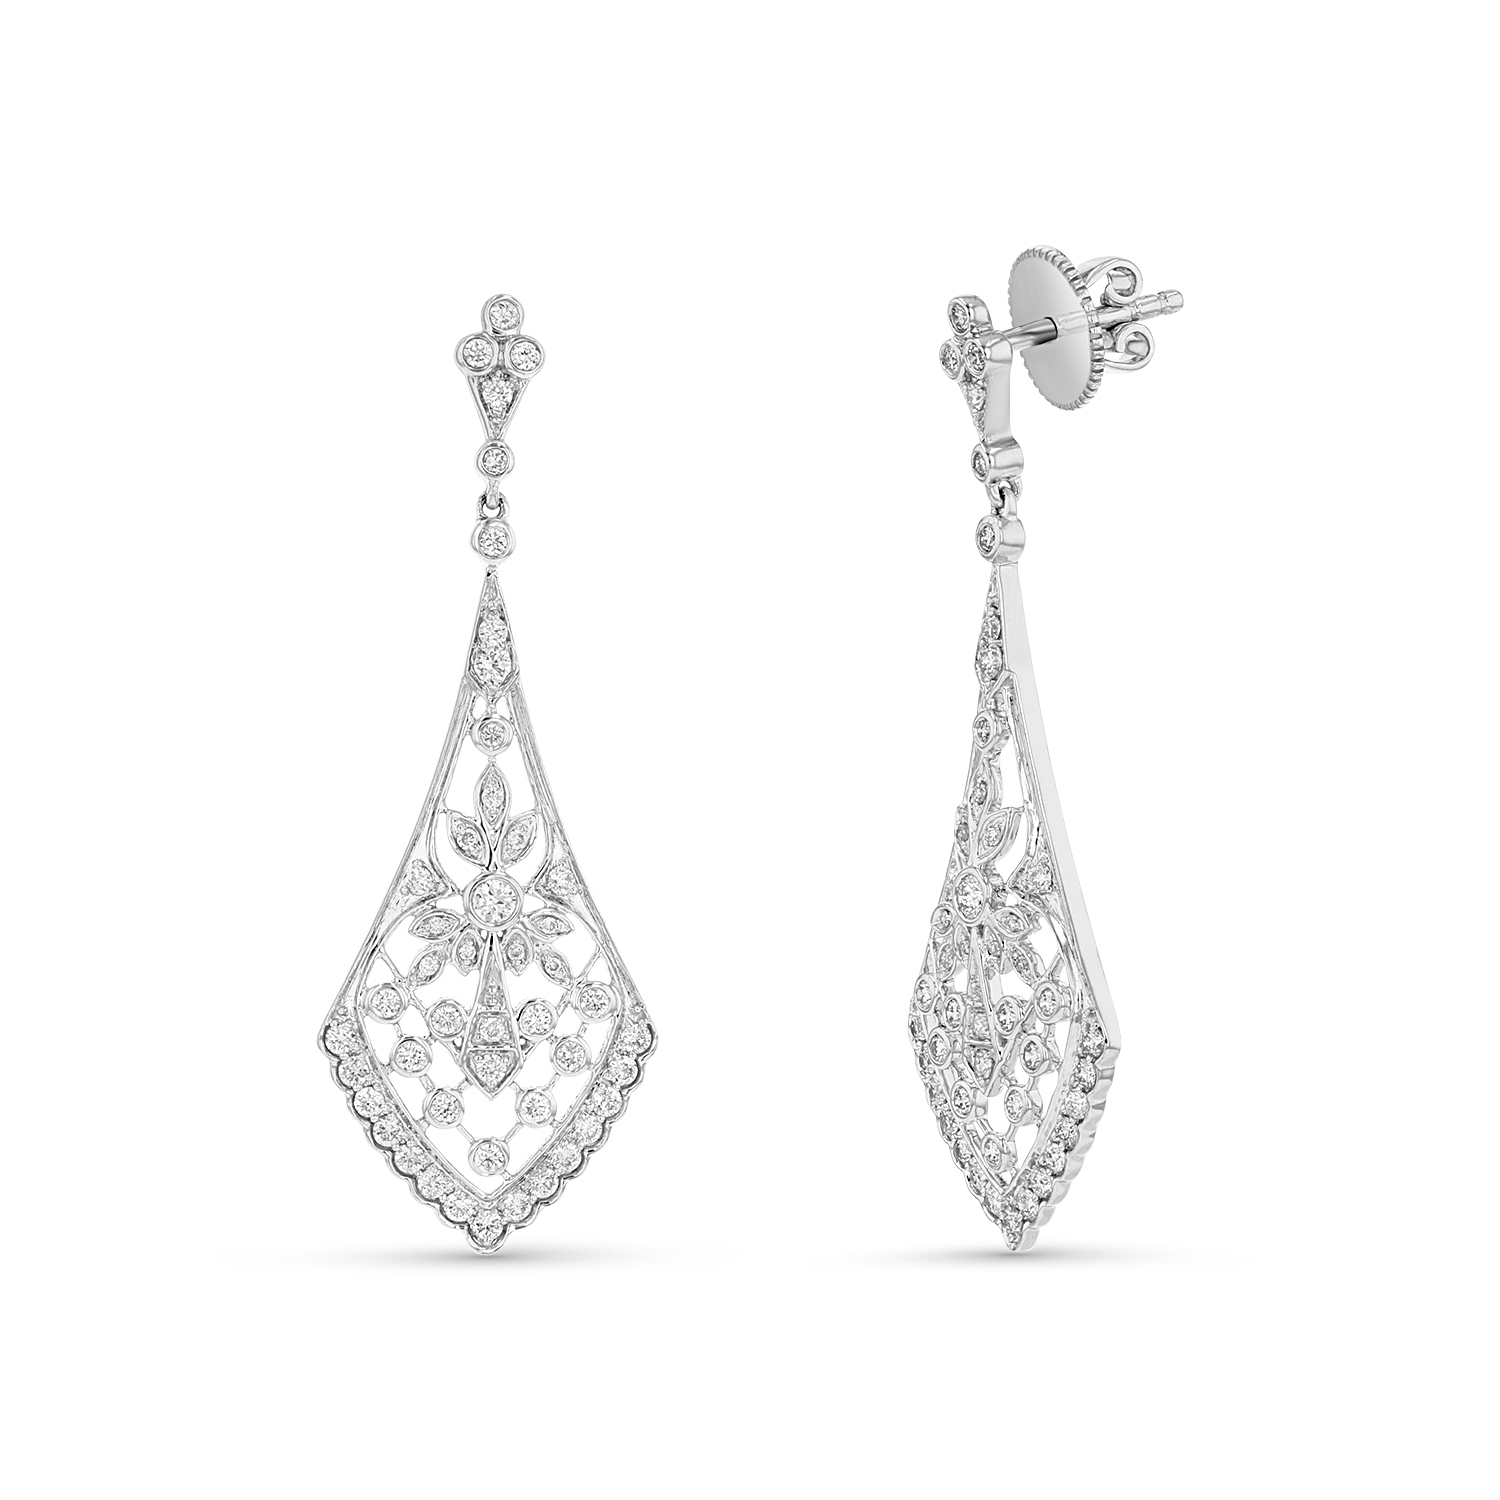 View  0.94ctw Dia Dangling Earrings in 18k White Gold